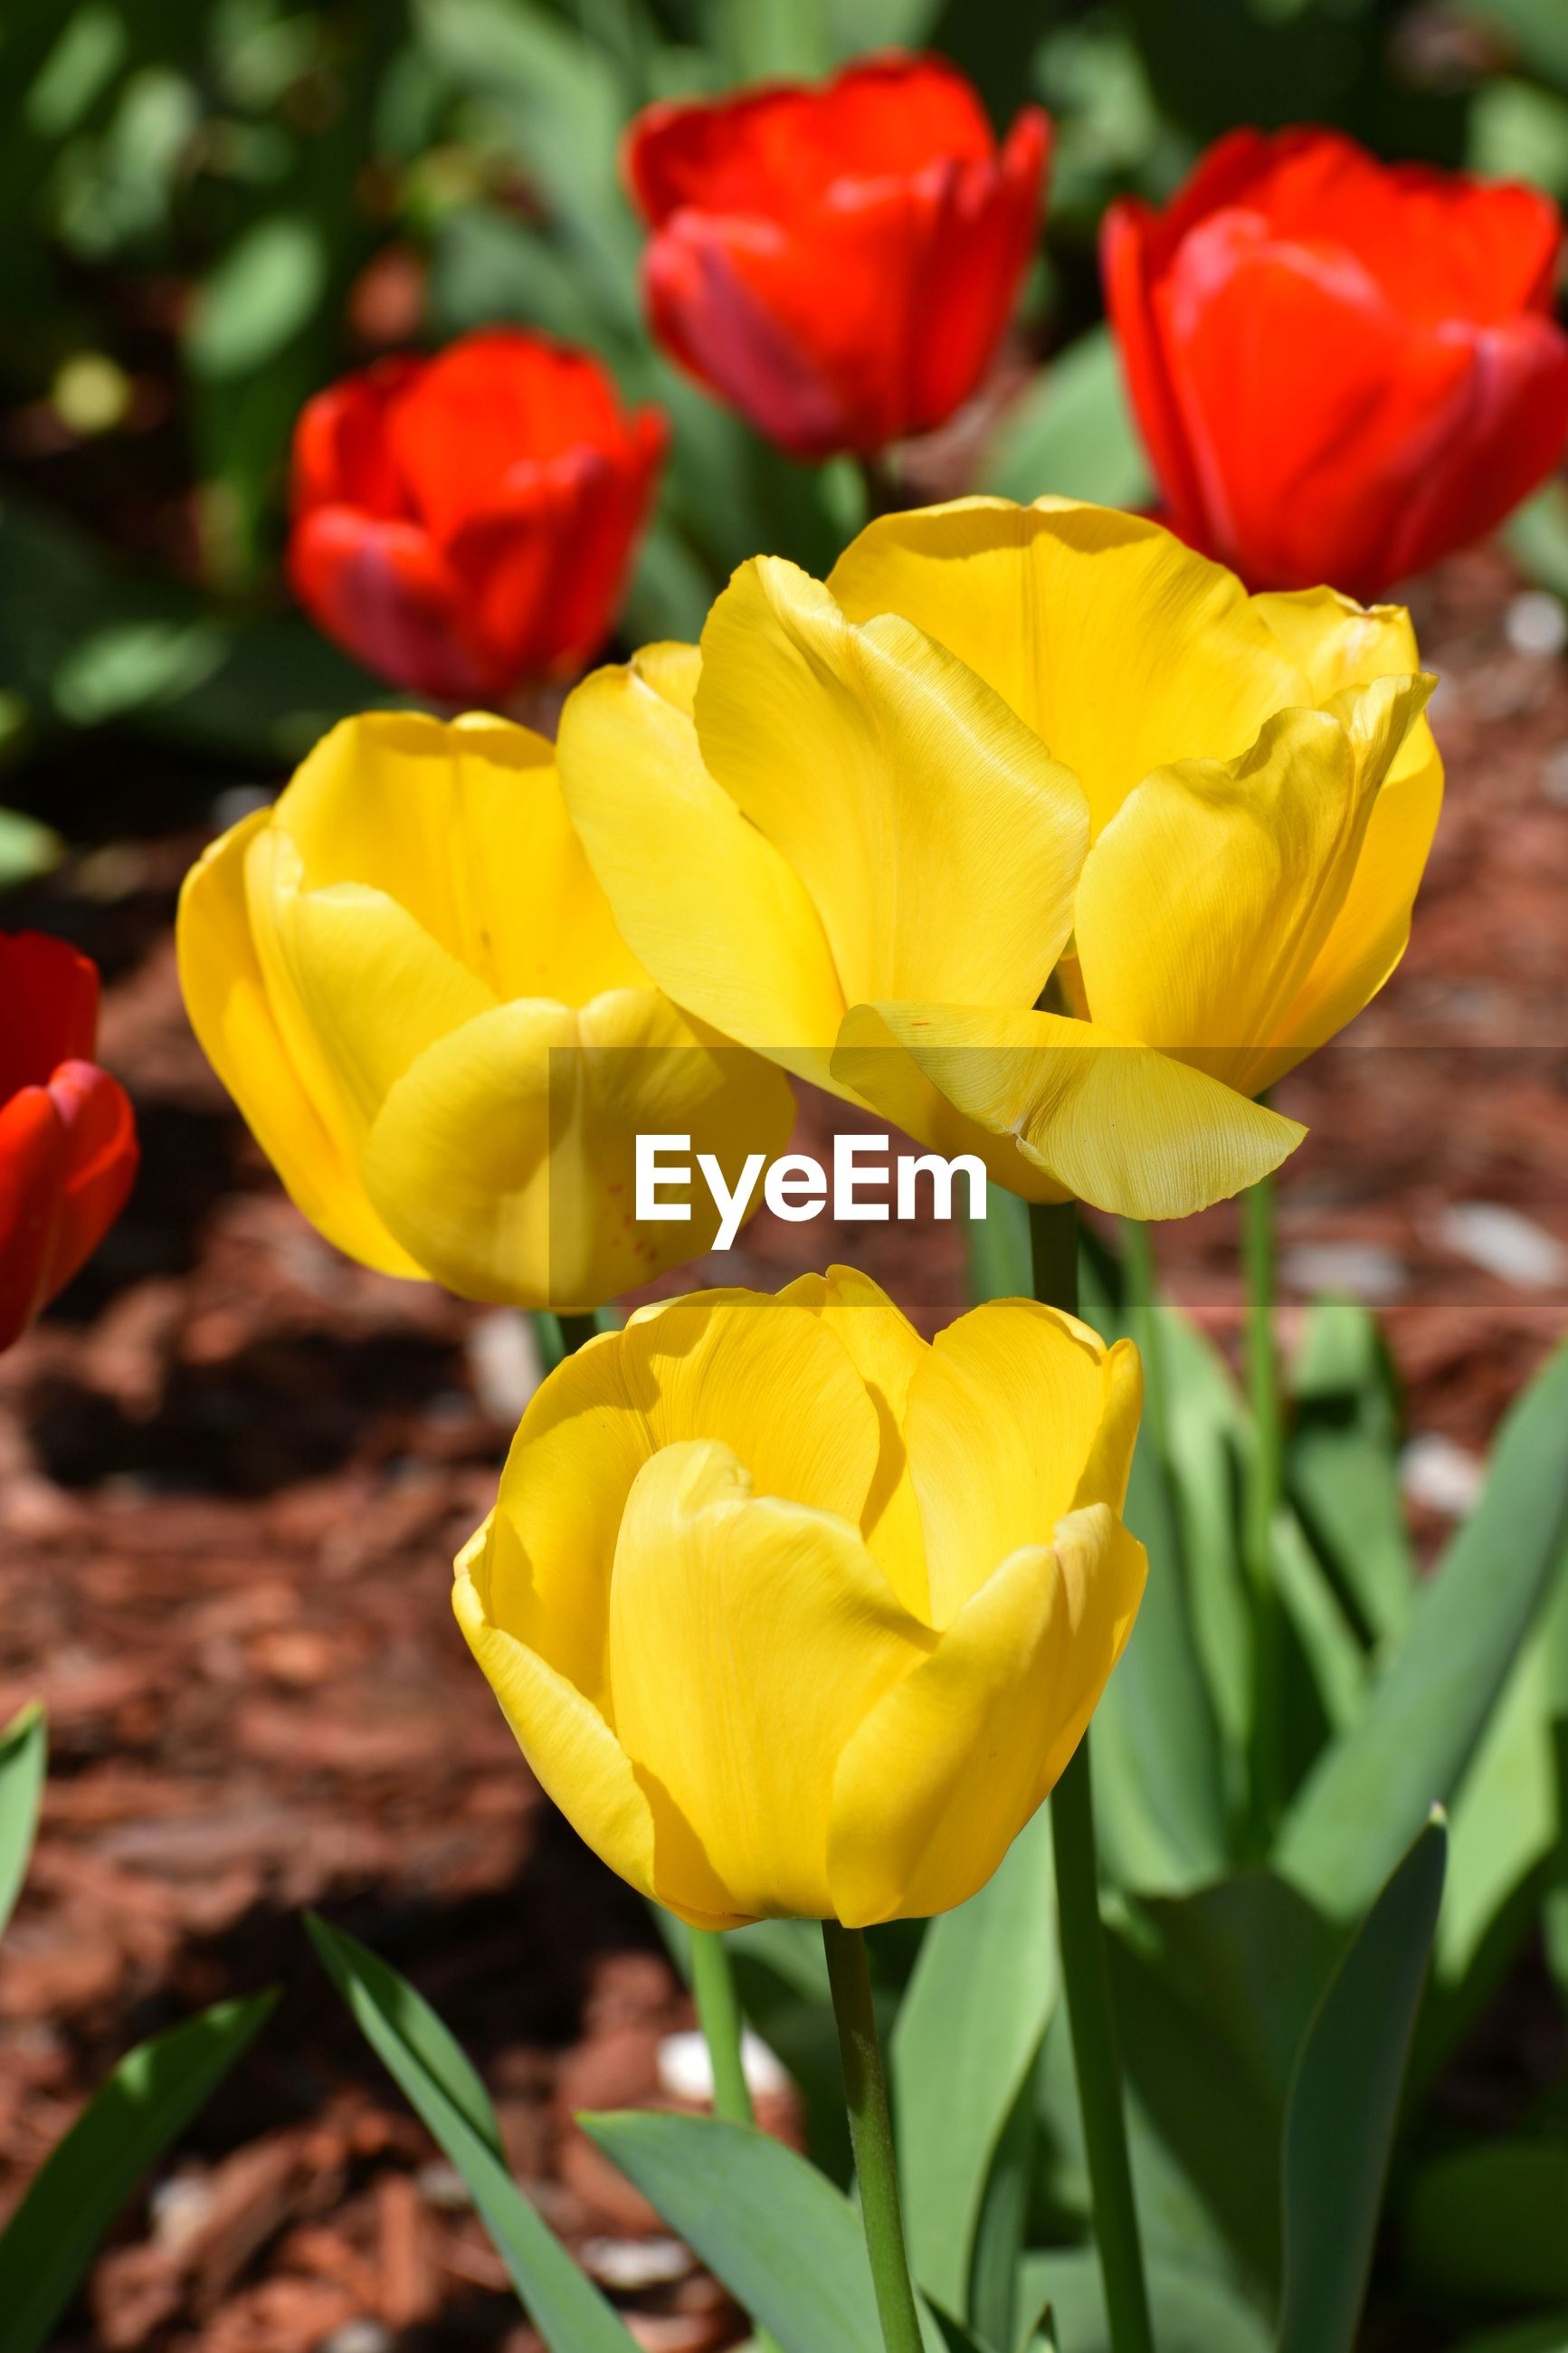 CLOSE-UP OF YELLOW TULIPS IN BLOOM